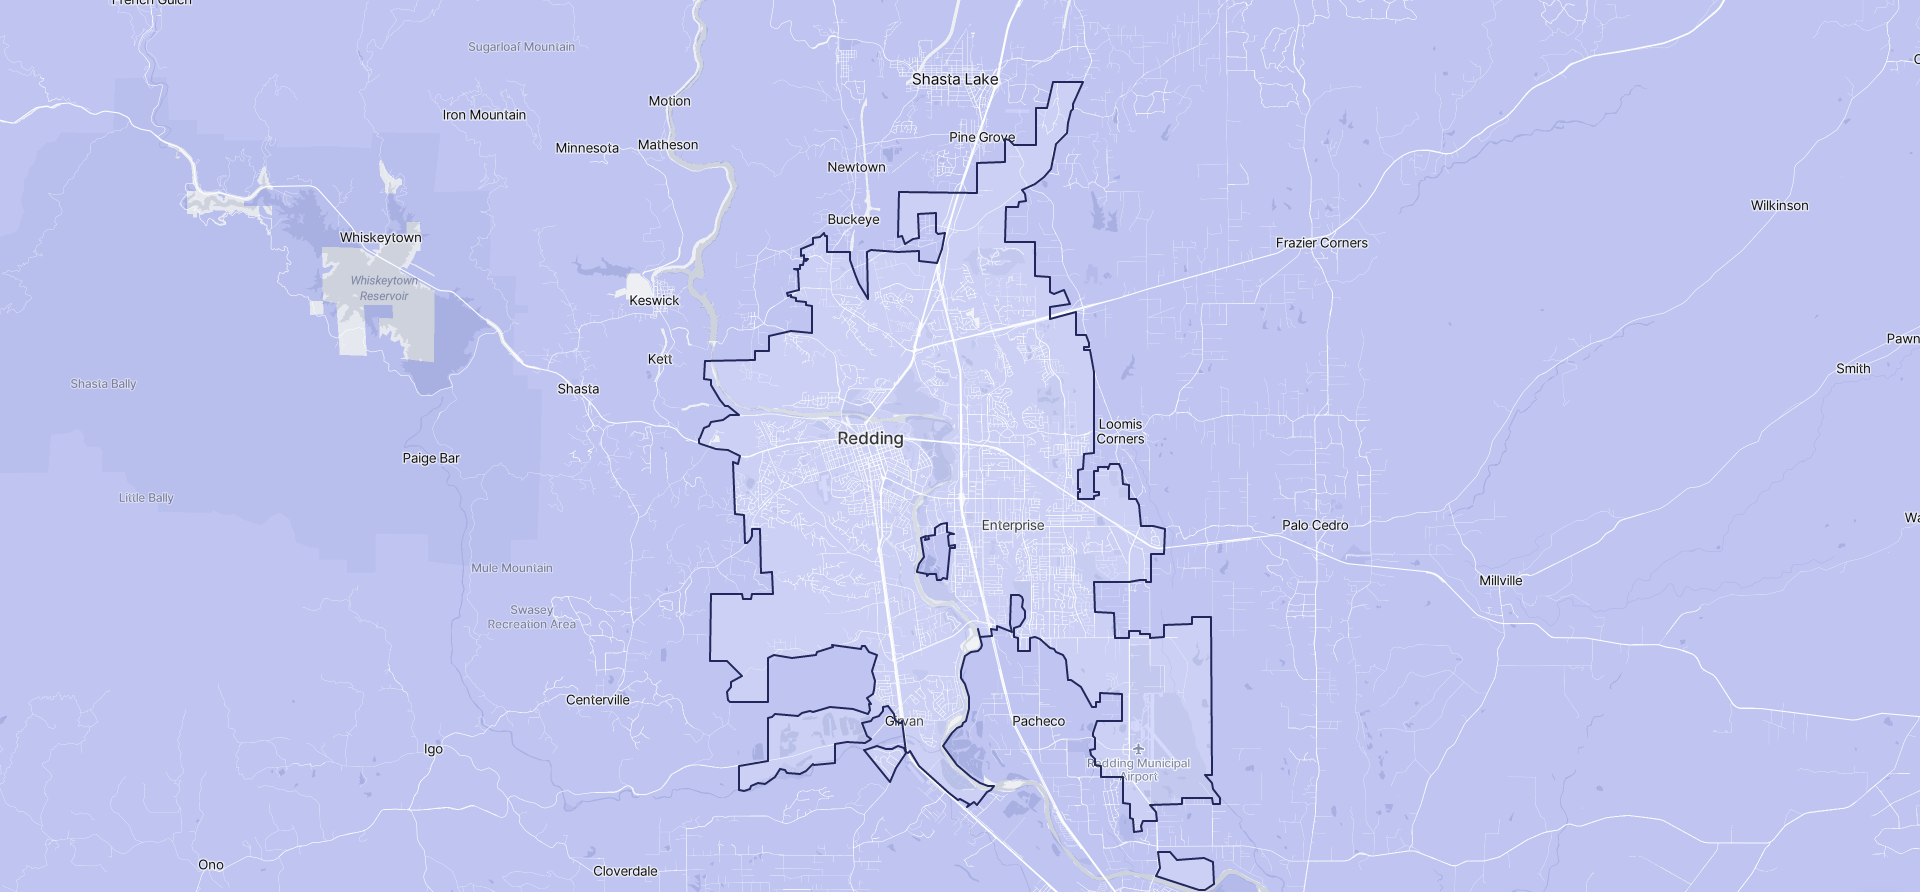 Image of Redding boundaries on a map.